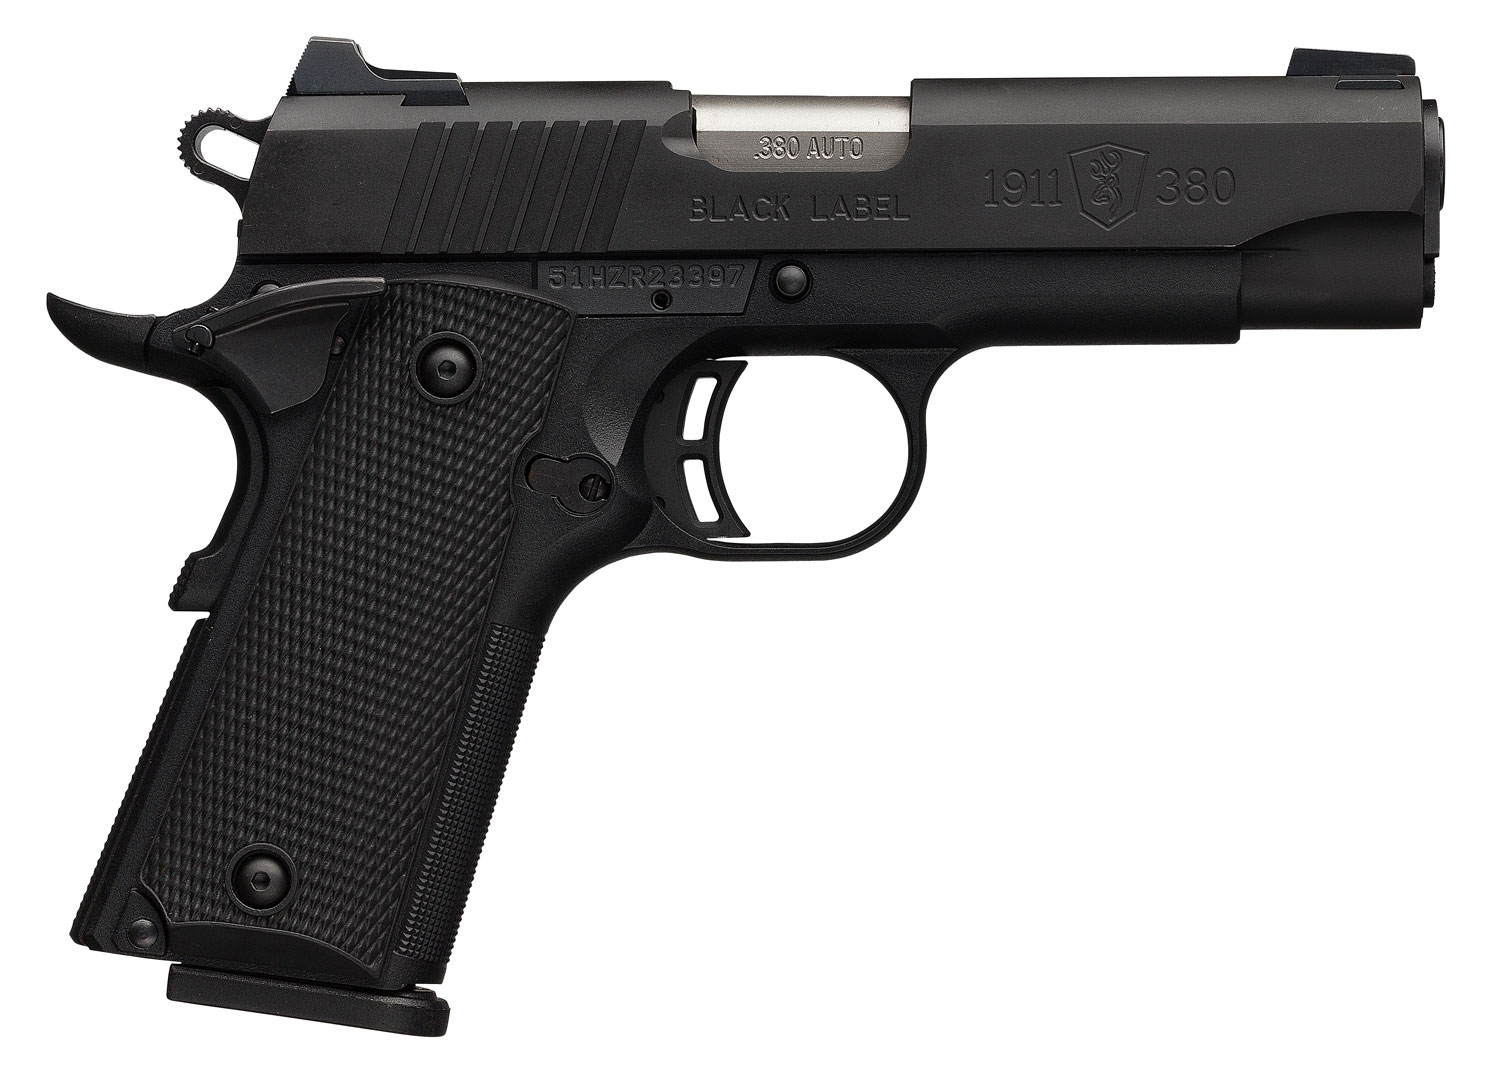 Browning 051941492 1911-380 Black Label Special Compact Single 380 Automatic Colt Pistol (ACP) 3.625